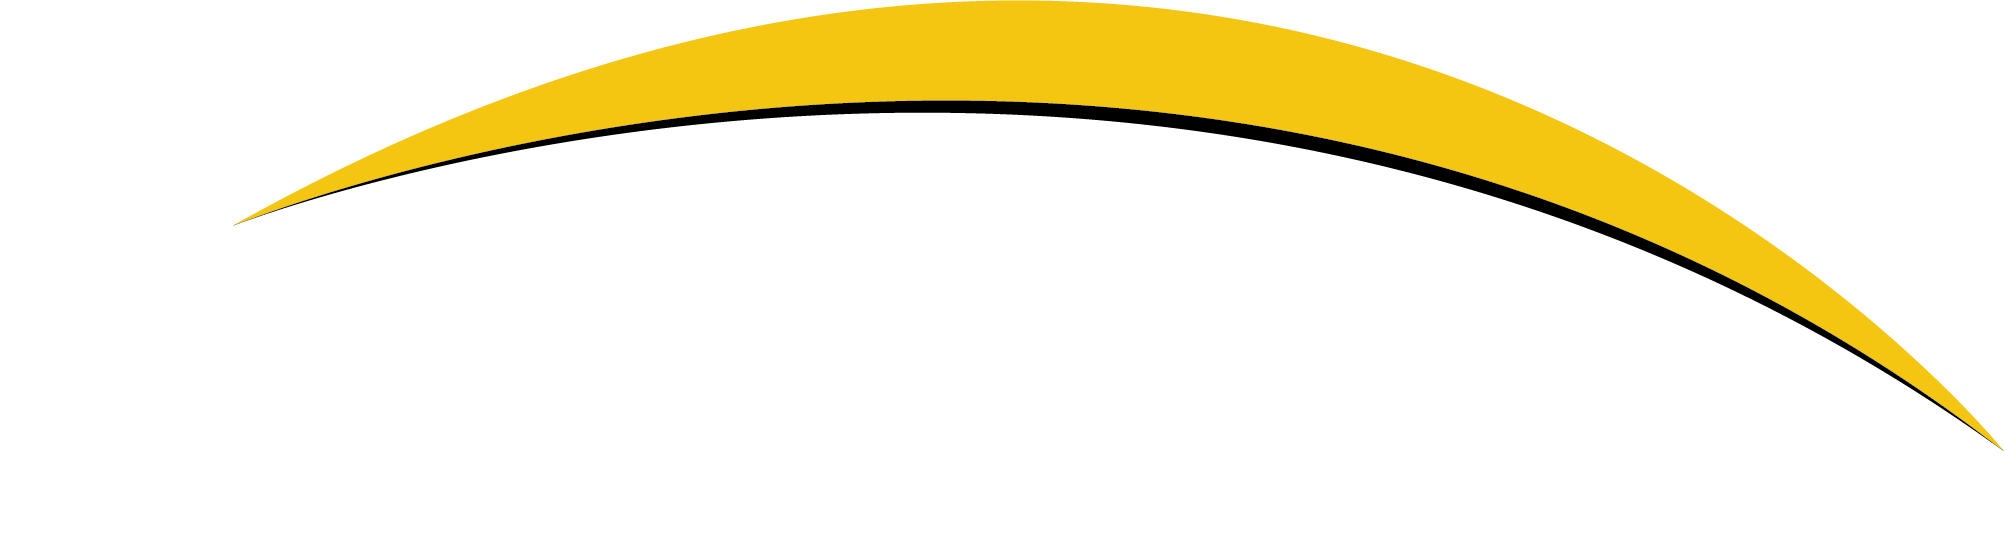 Weather Shade Blinds